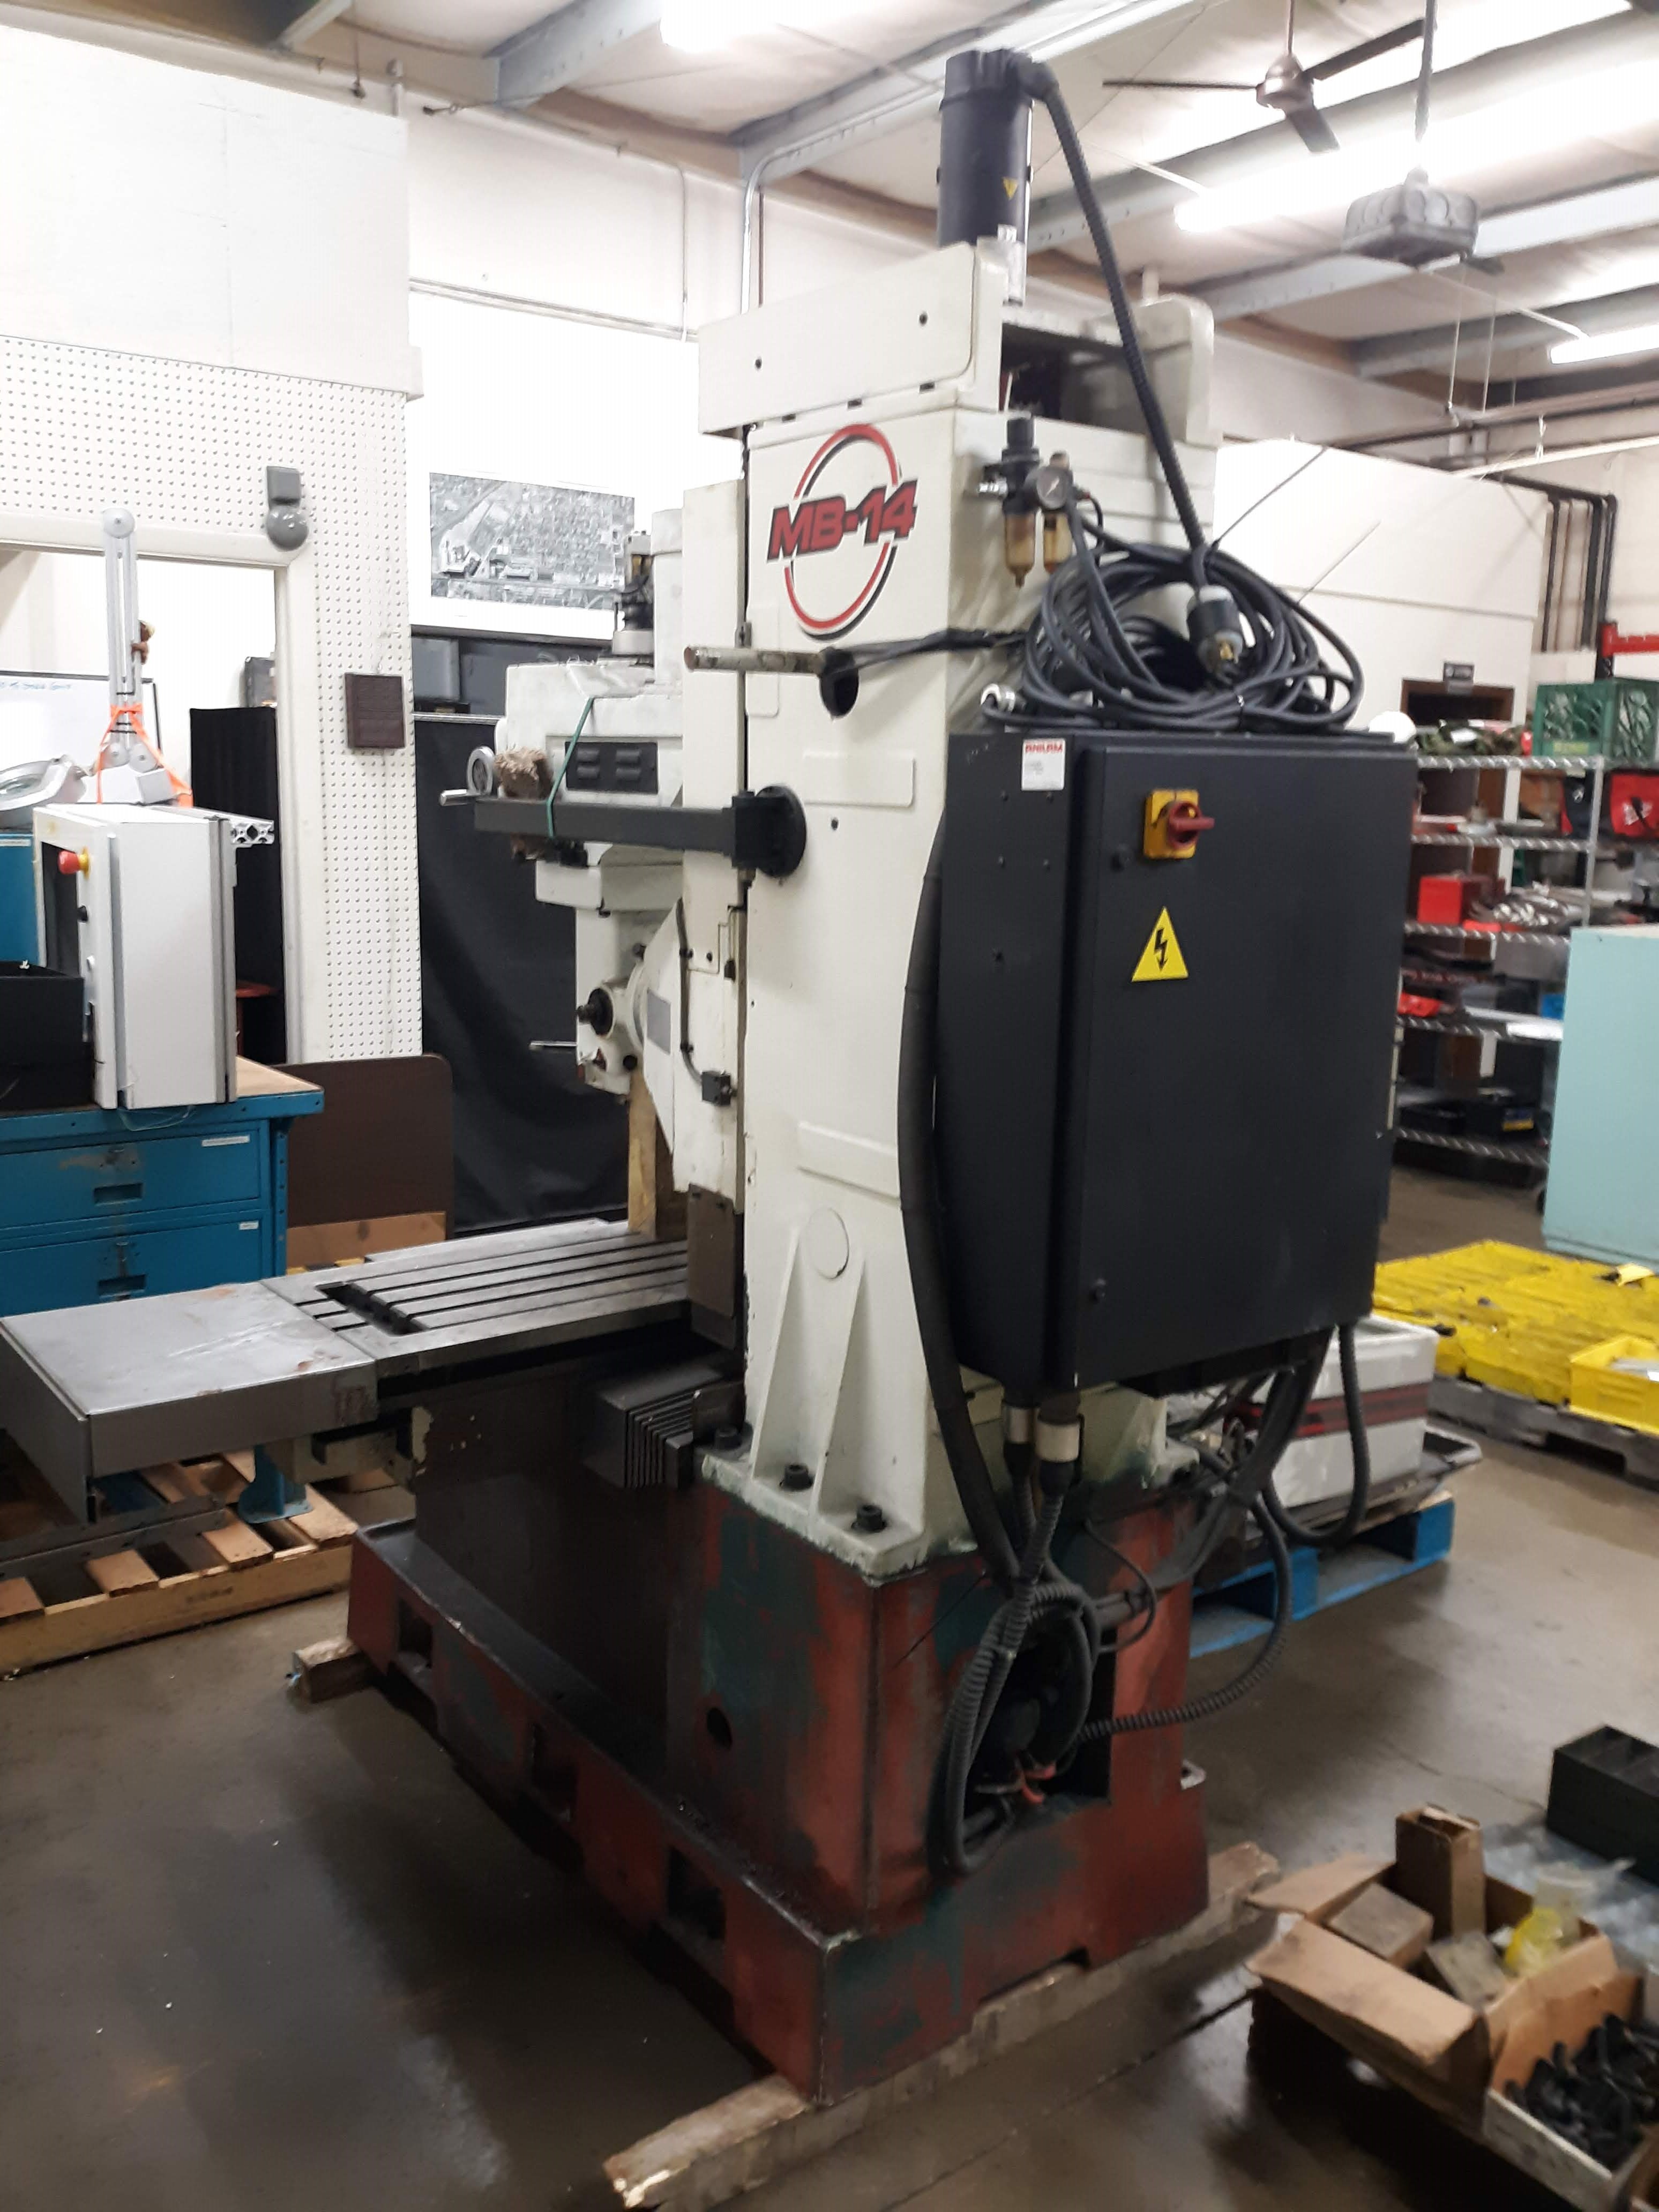 FRYER CNC MILLING MACHINE MODEL-MB-14 S#14247 54 X 16 TABLE ANILAM 3300 MK DRO (LOCATED AT: 432 - Image 5 of 8